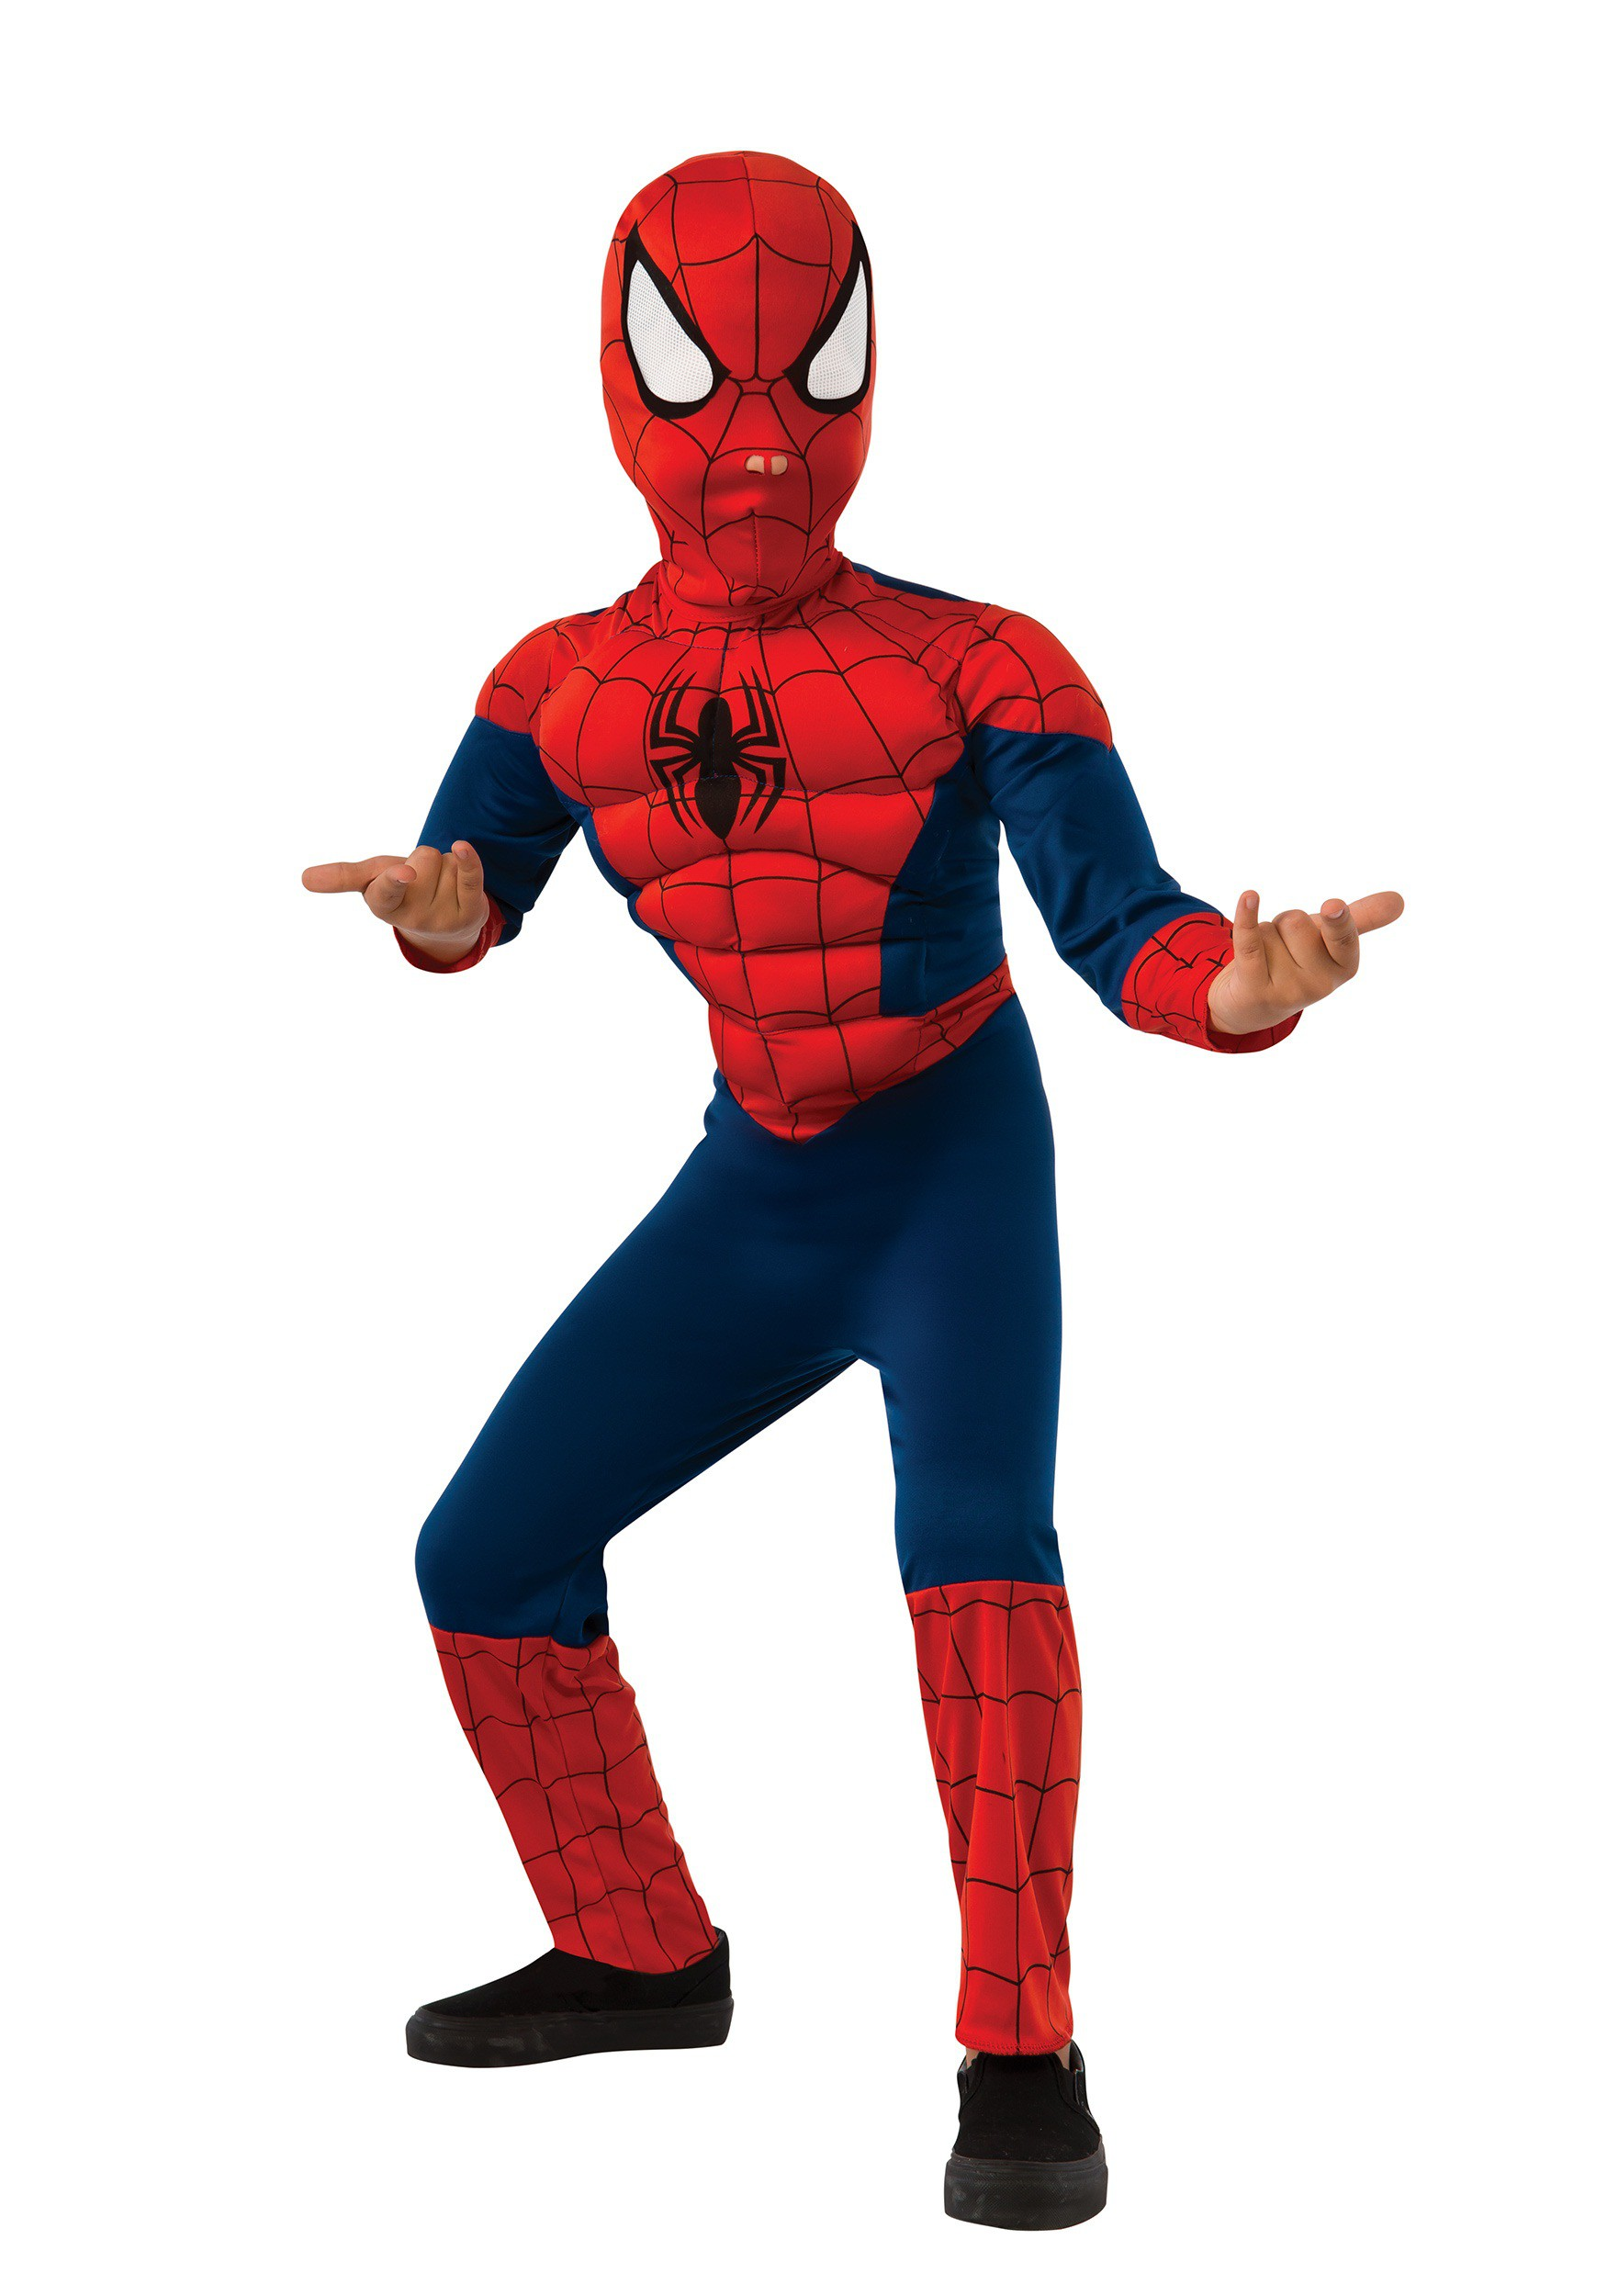 Child Ultimate Spider-Man Costume RU620010